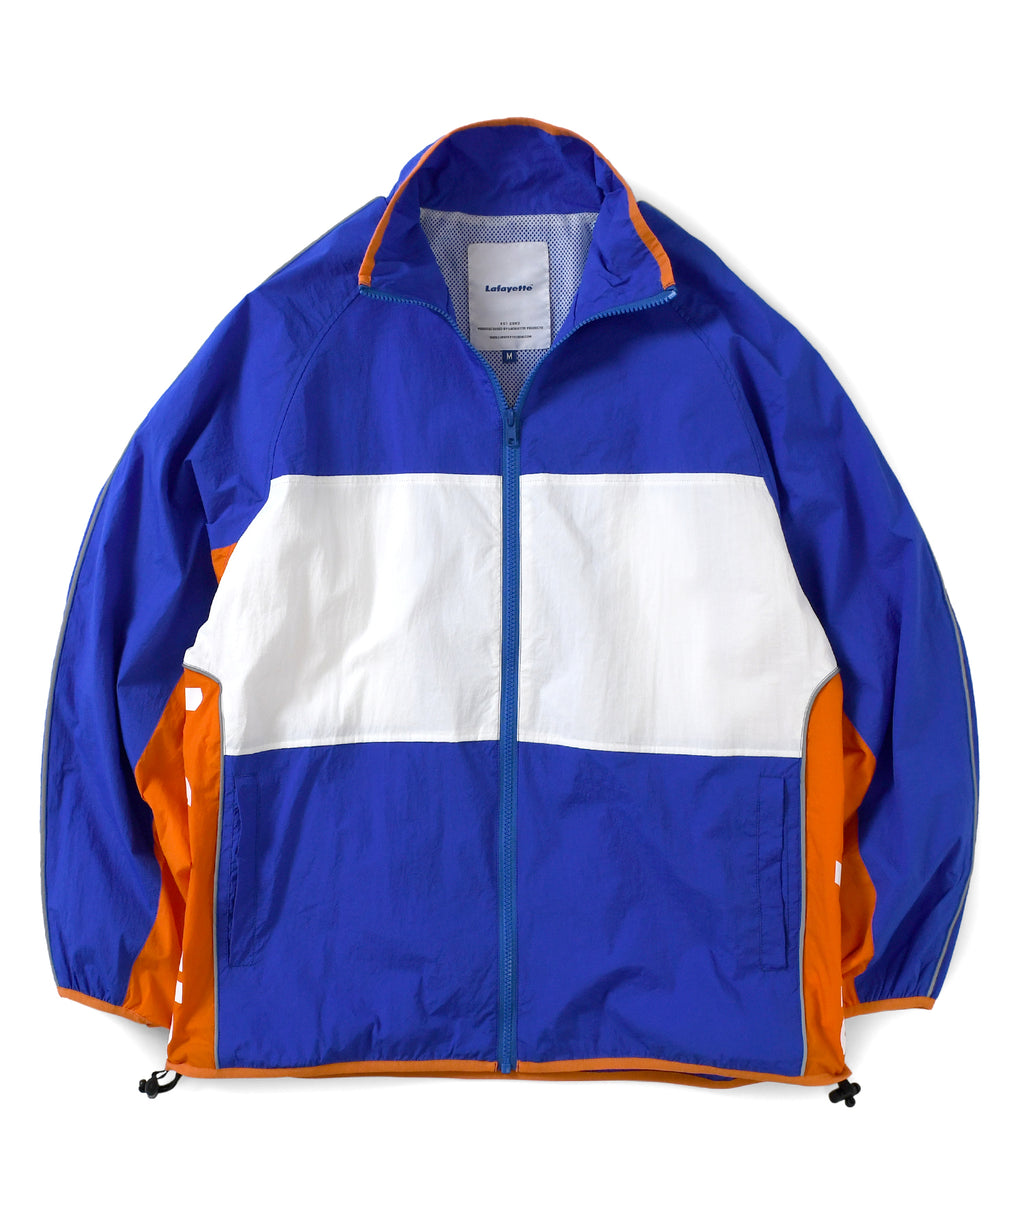 Lafayette COLORBLOCK NYLON TRACK JACKET LS201002 ROYAL